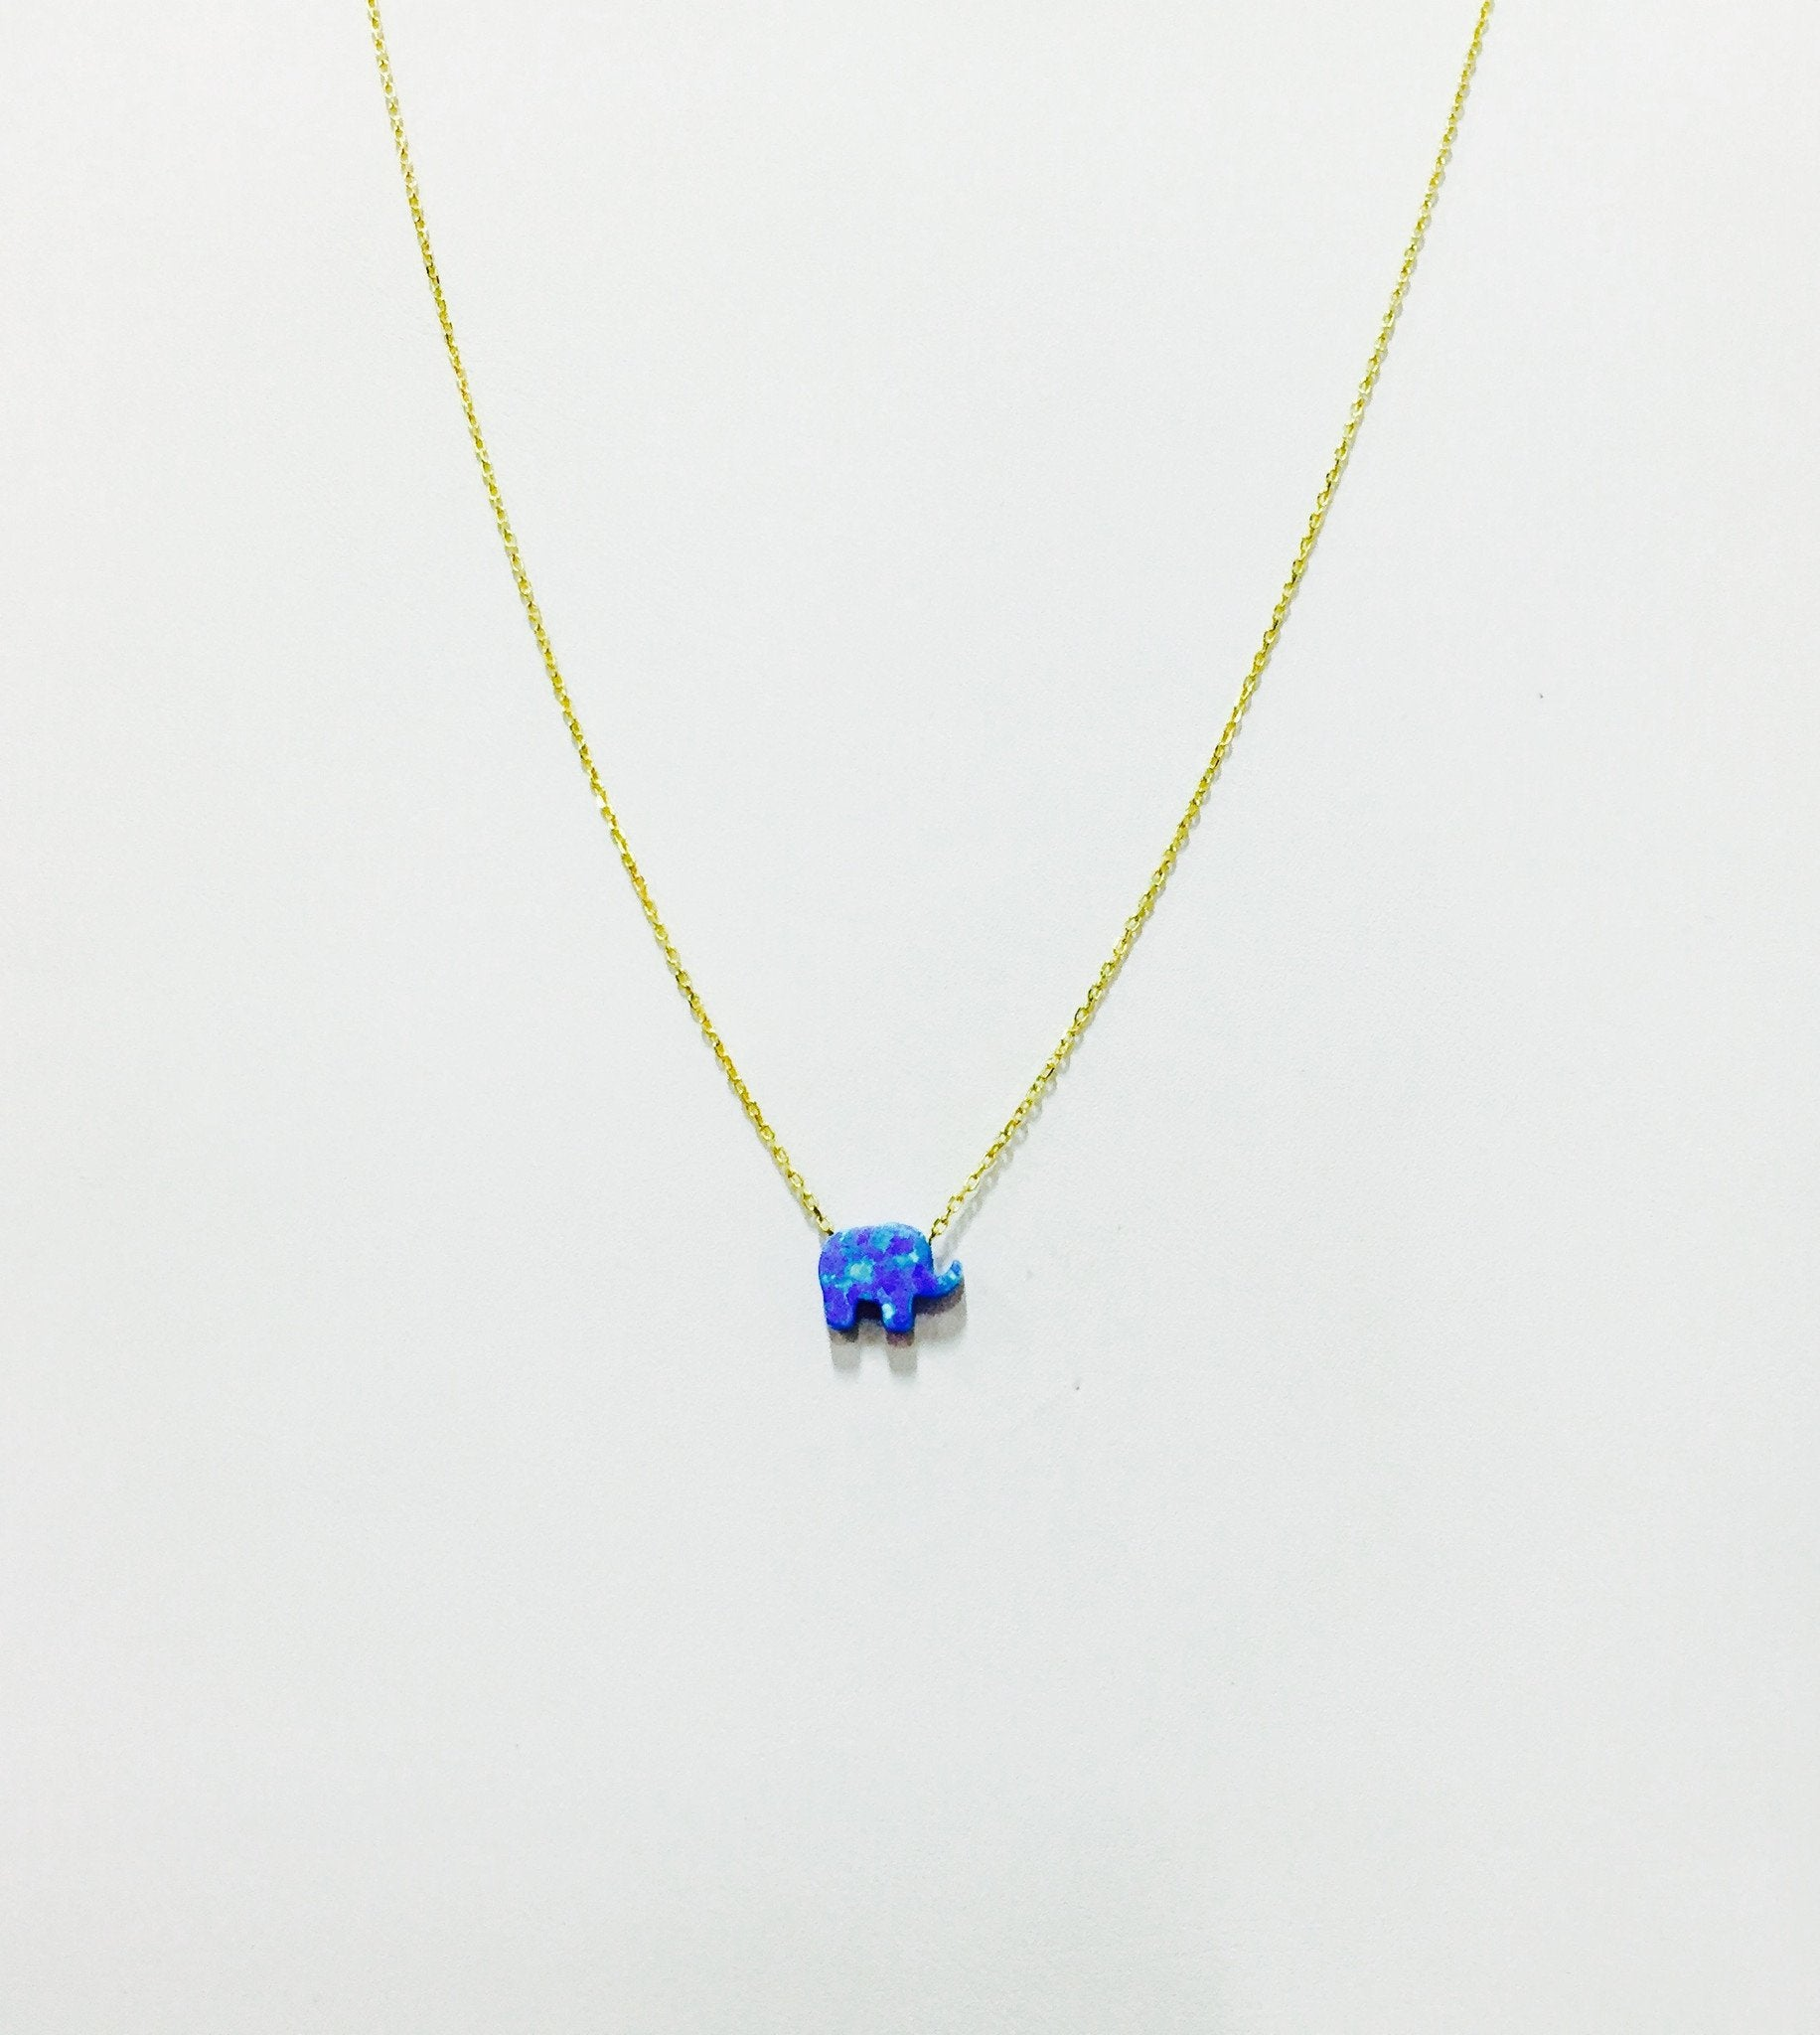 Elephant Necklace in Blue Opal